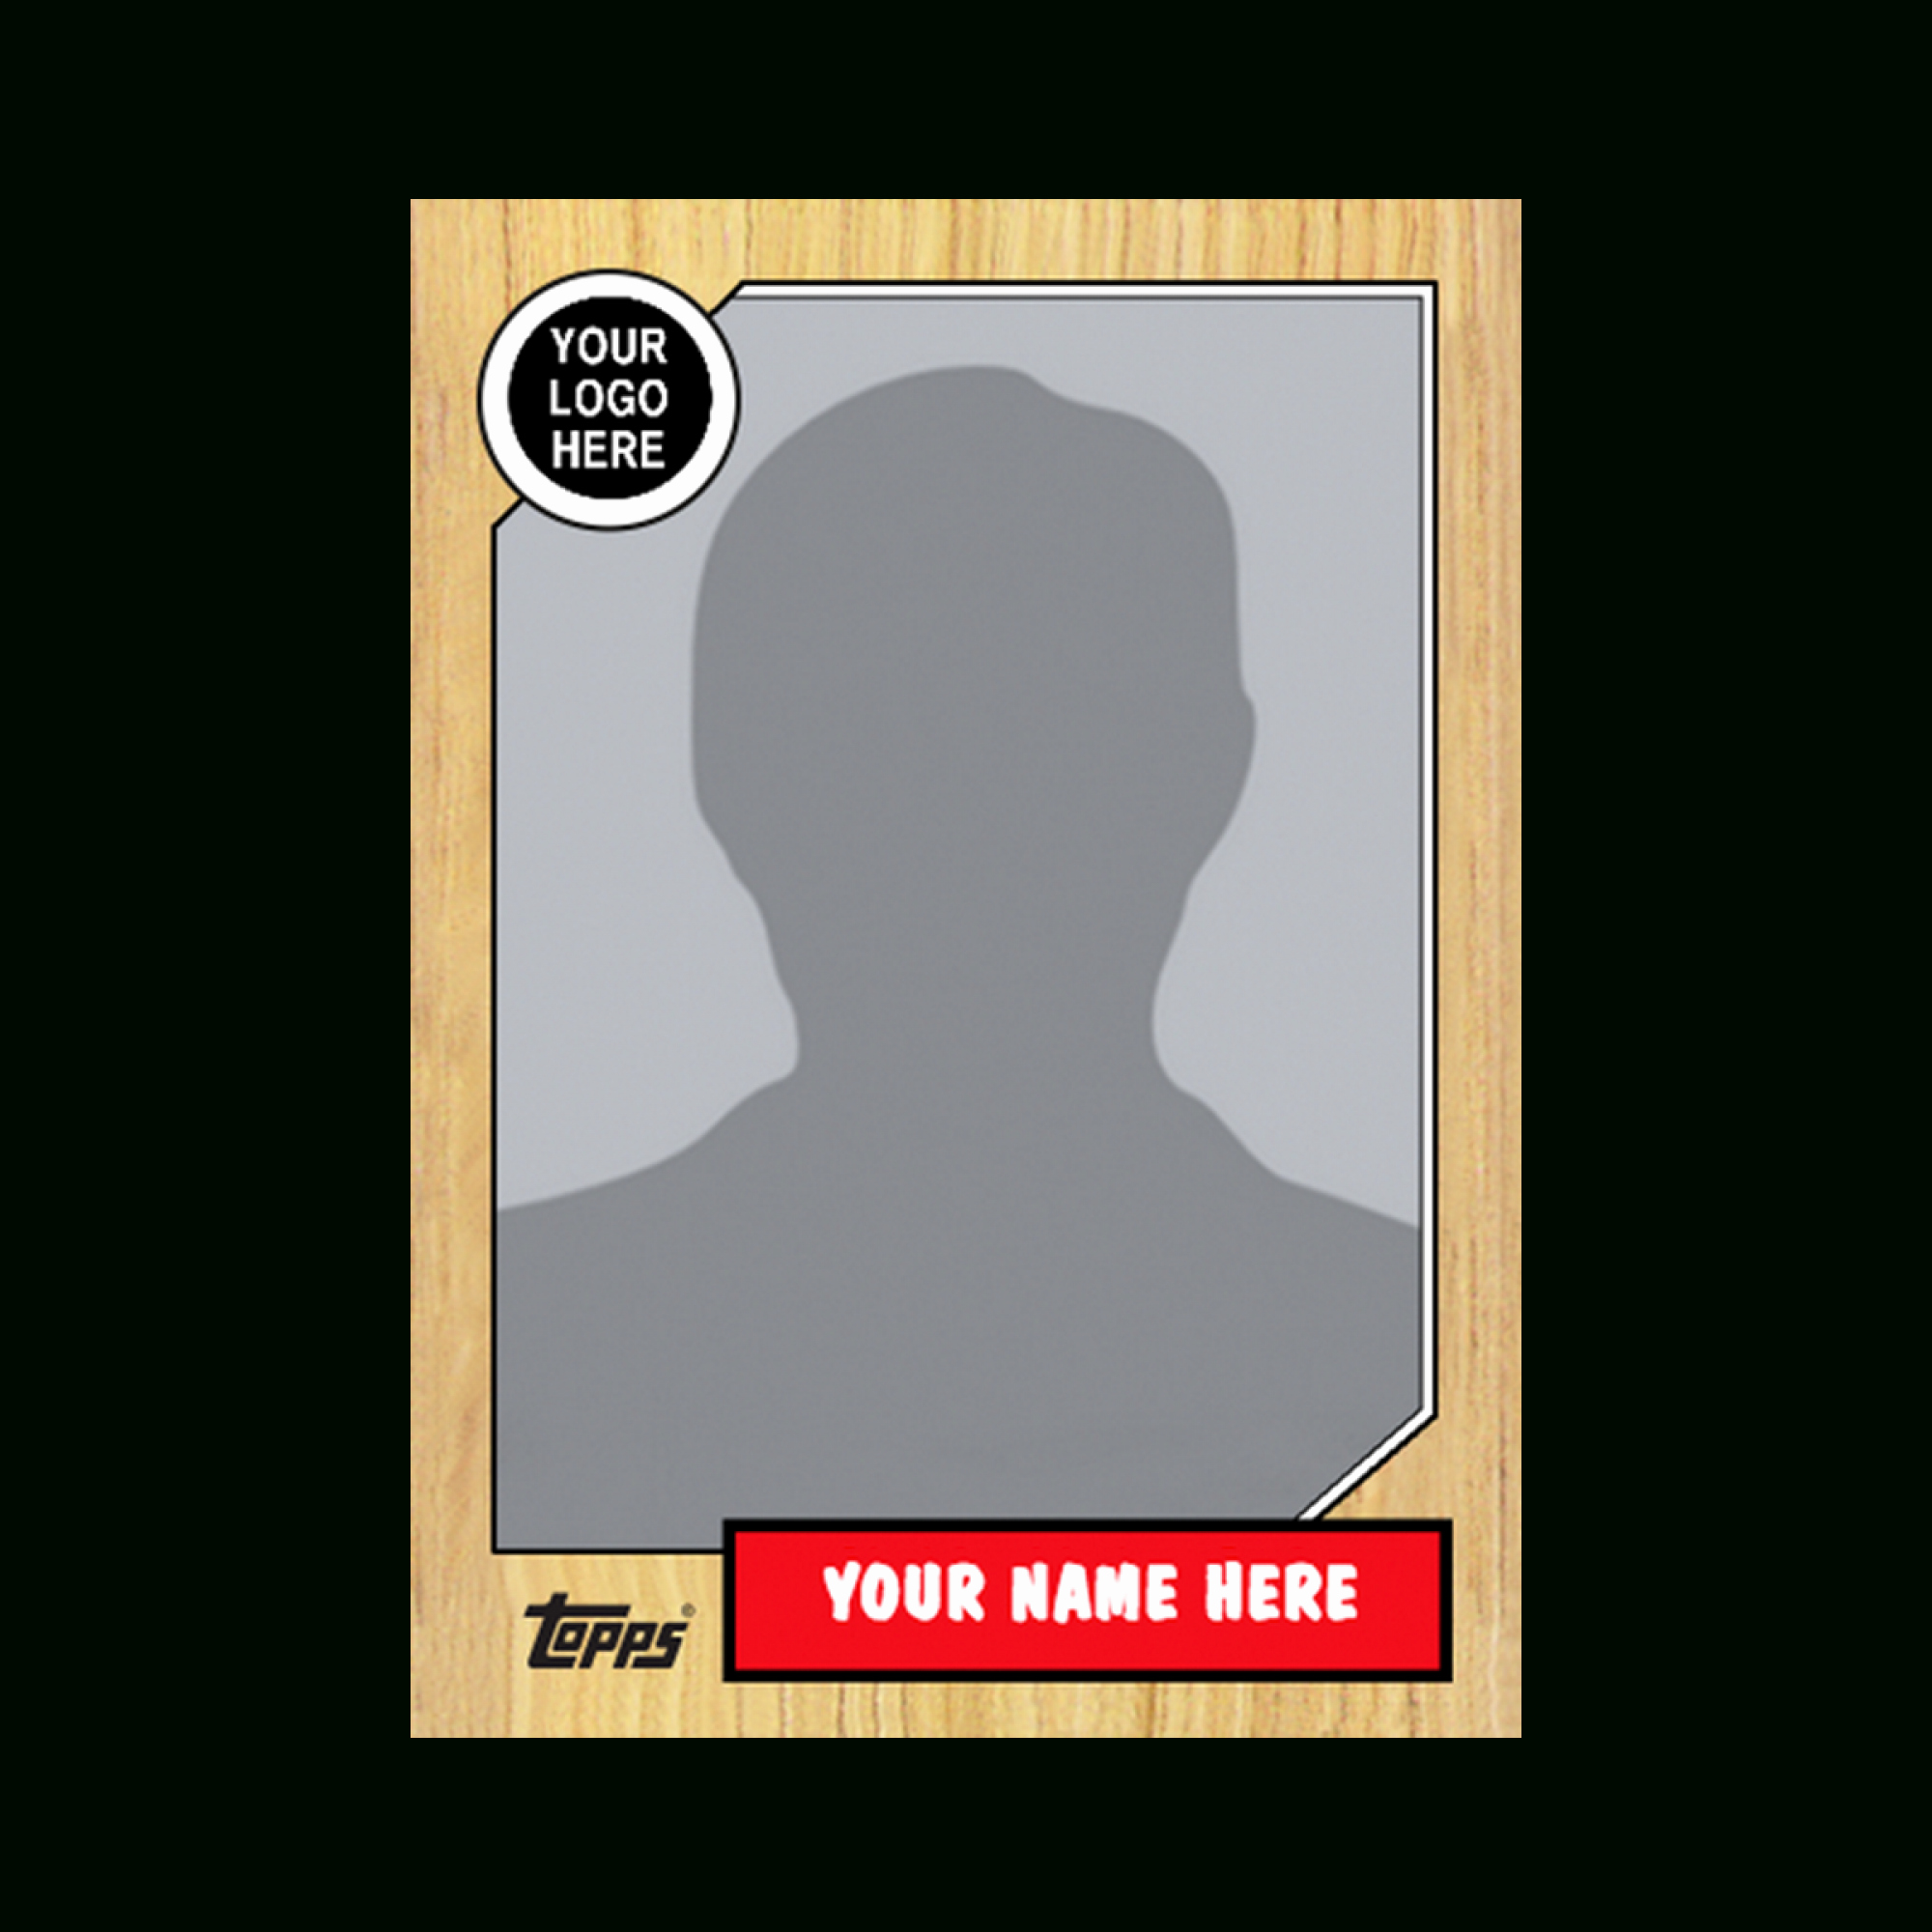 Baseball Card Template Photoshop Inspirational Baseball Card Template